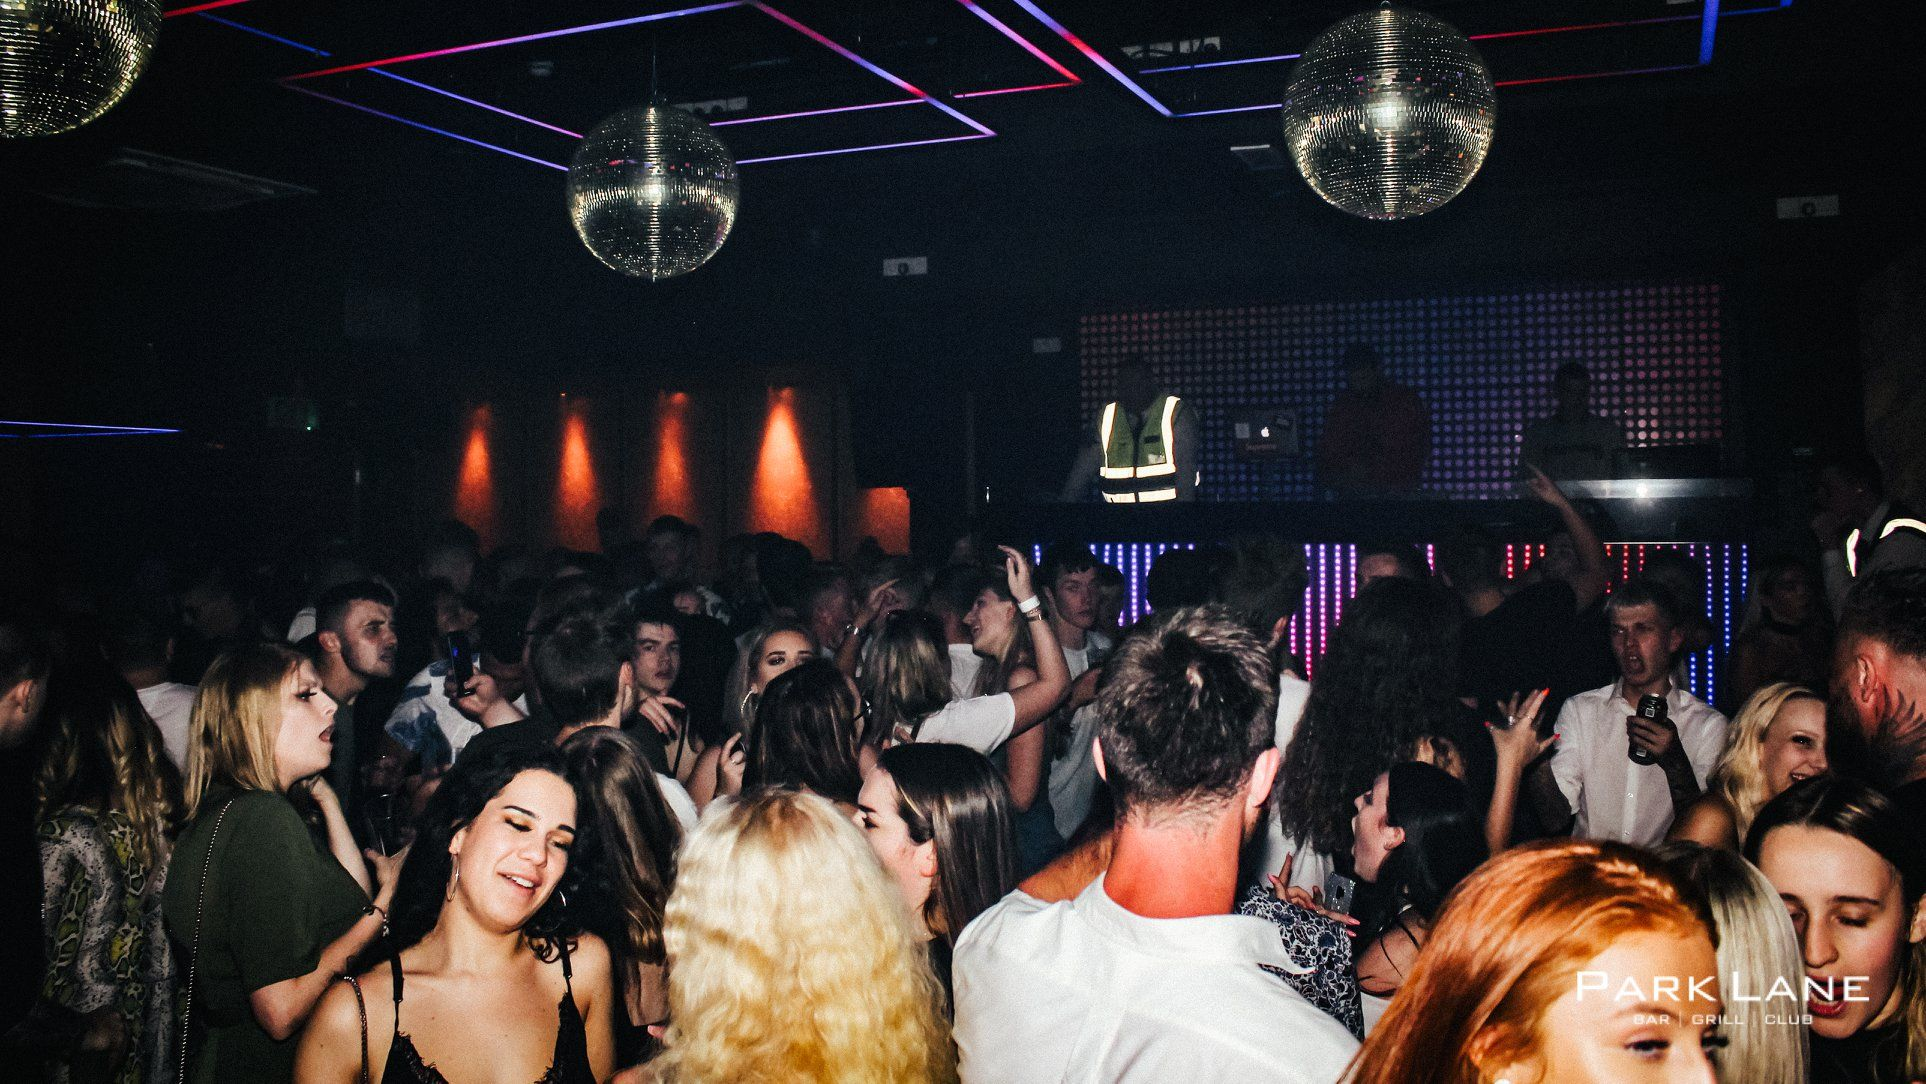 Image may contain: Party, Night Life, Disco, Ceiling Fan, Appliance, Night Club, Club, Person, Human